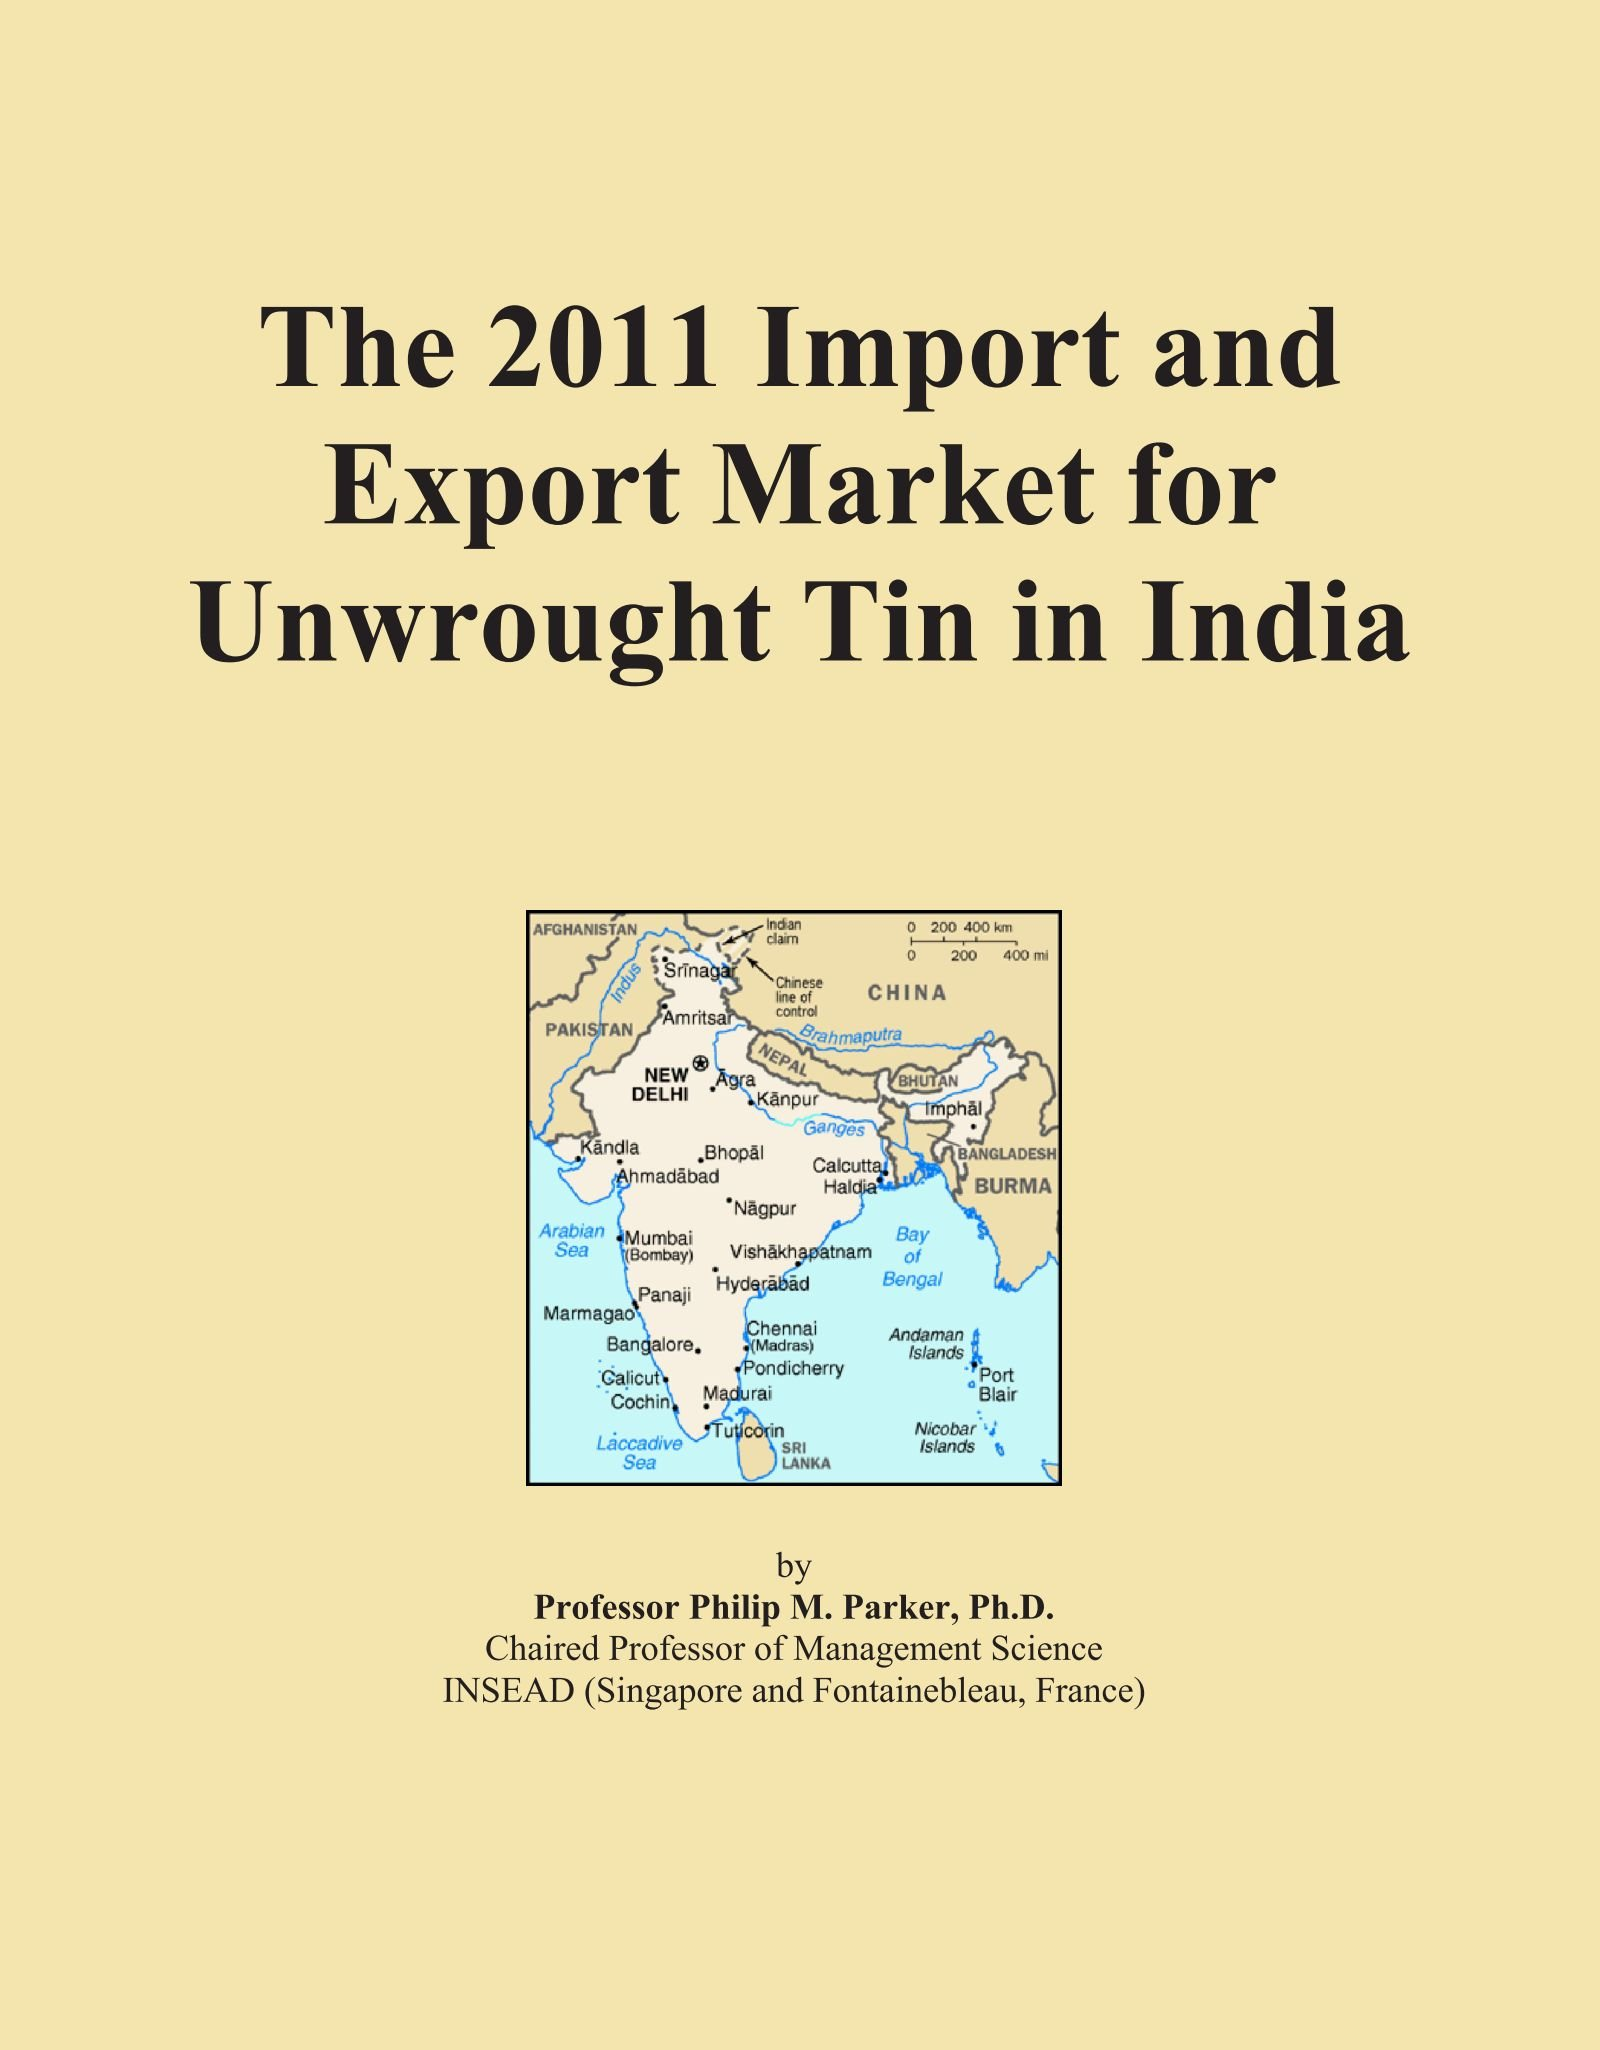 The 2011 Import and Export Market for Unwrought Tin in India